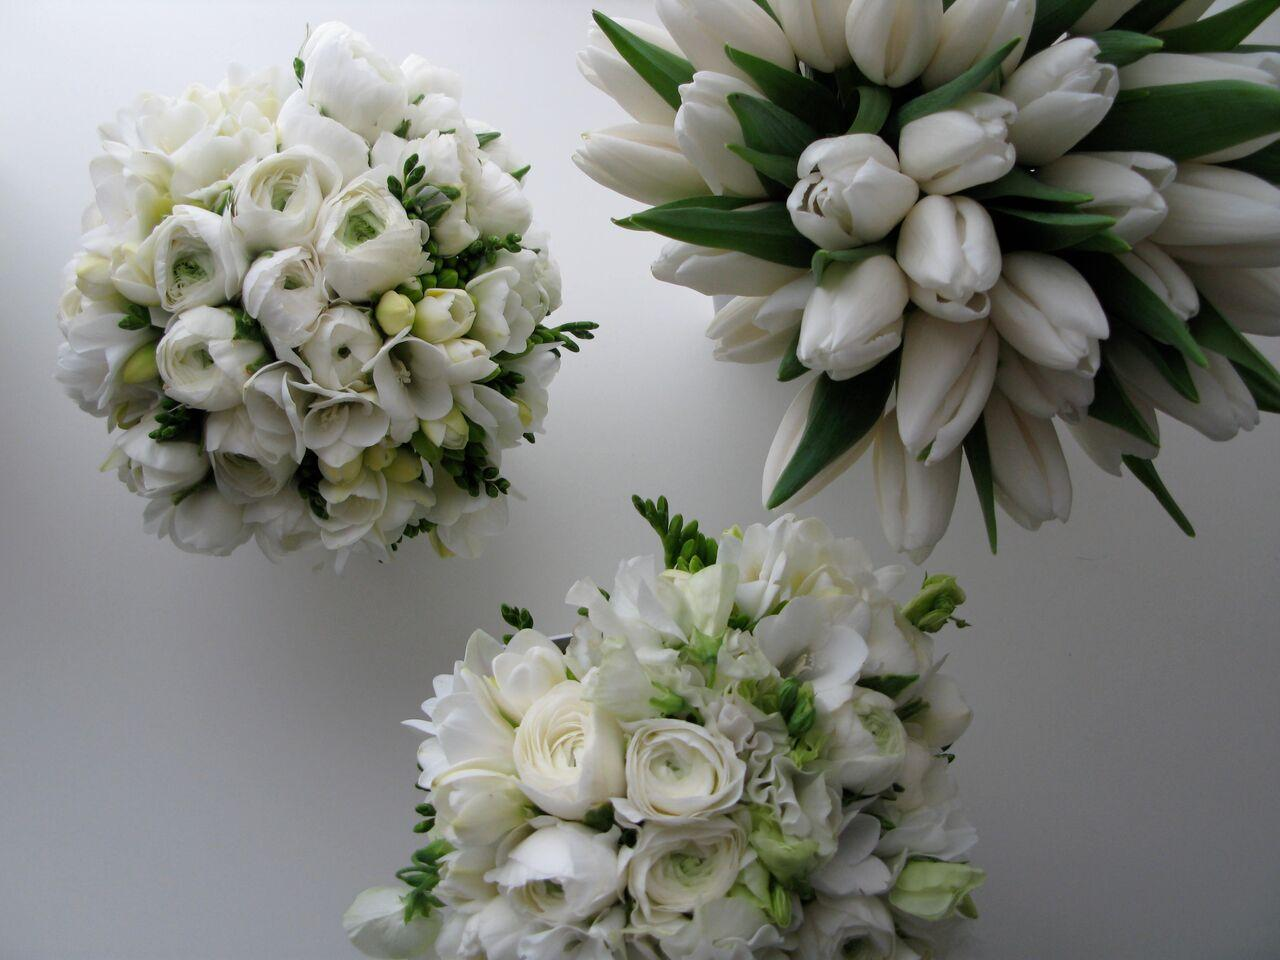 K'Mich Weddings in Philadelphia PA - wedding planning - white tulip, white roses - decoration